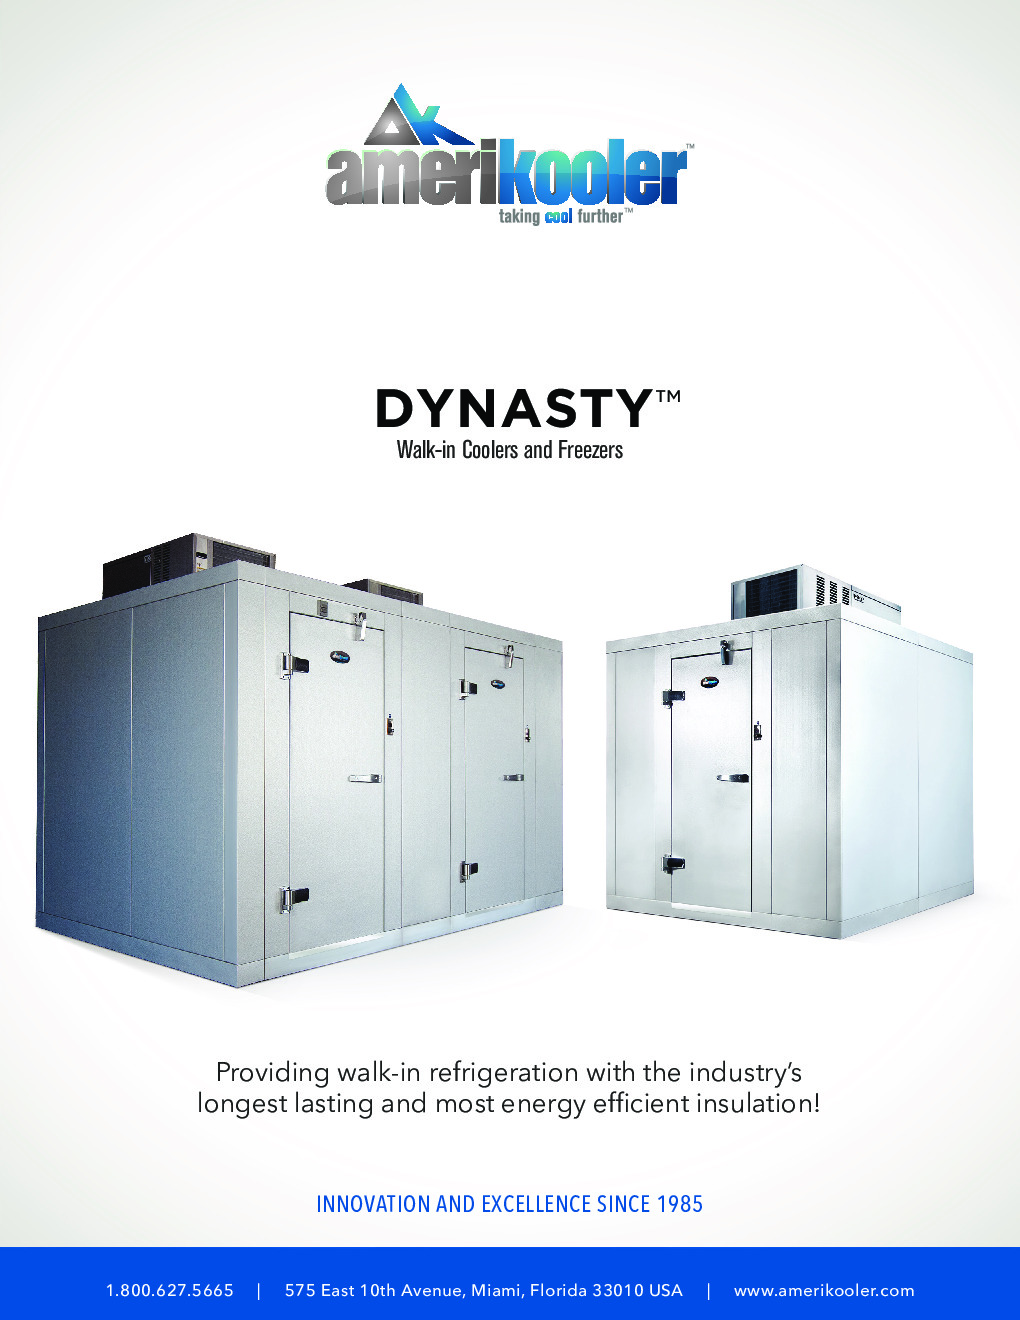 AmeriKooler DW091477N-6/8-RM 9' X 14' Walk-In Cooler, 8' L Cooler without Floor and 6' L Freezer, Remote